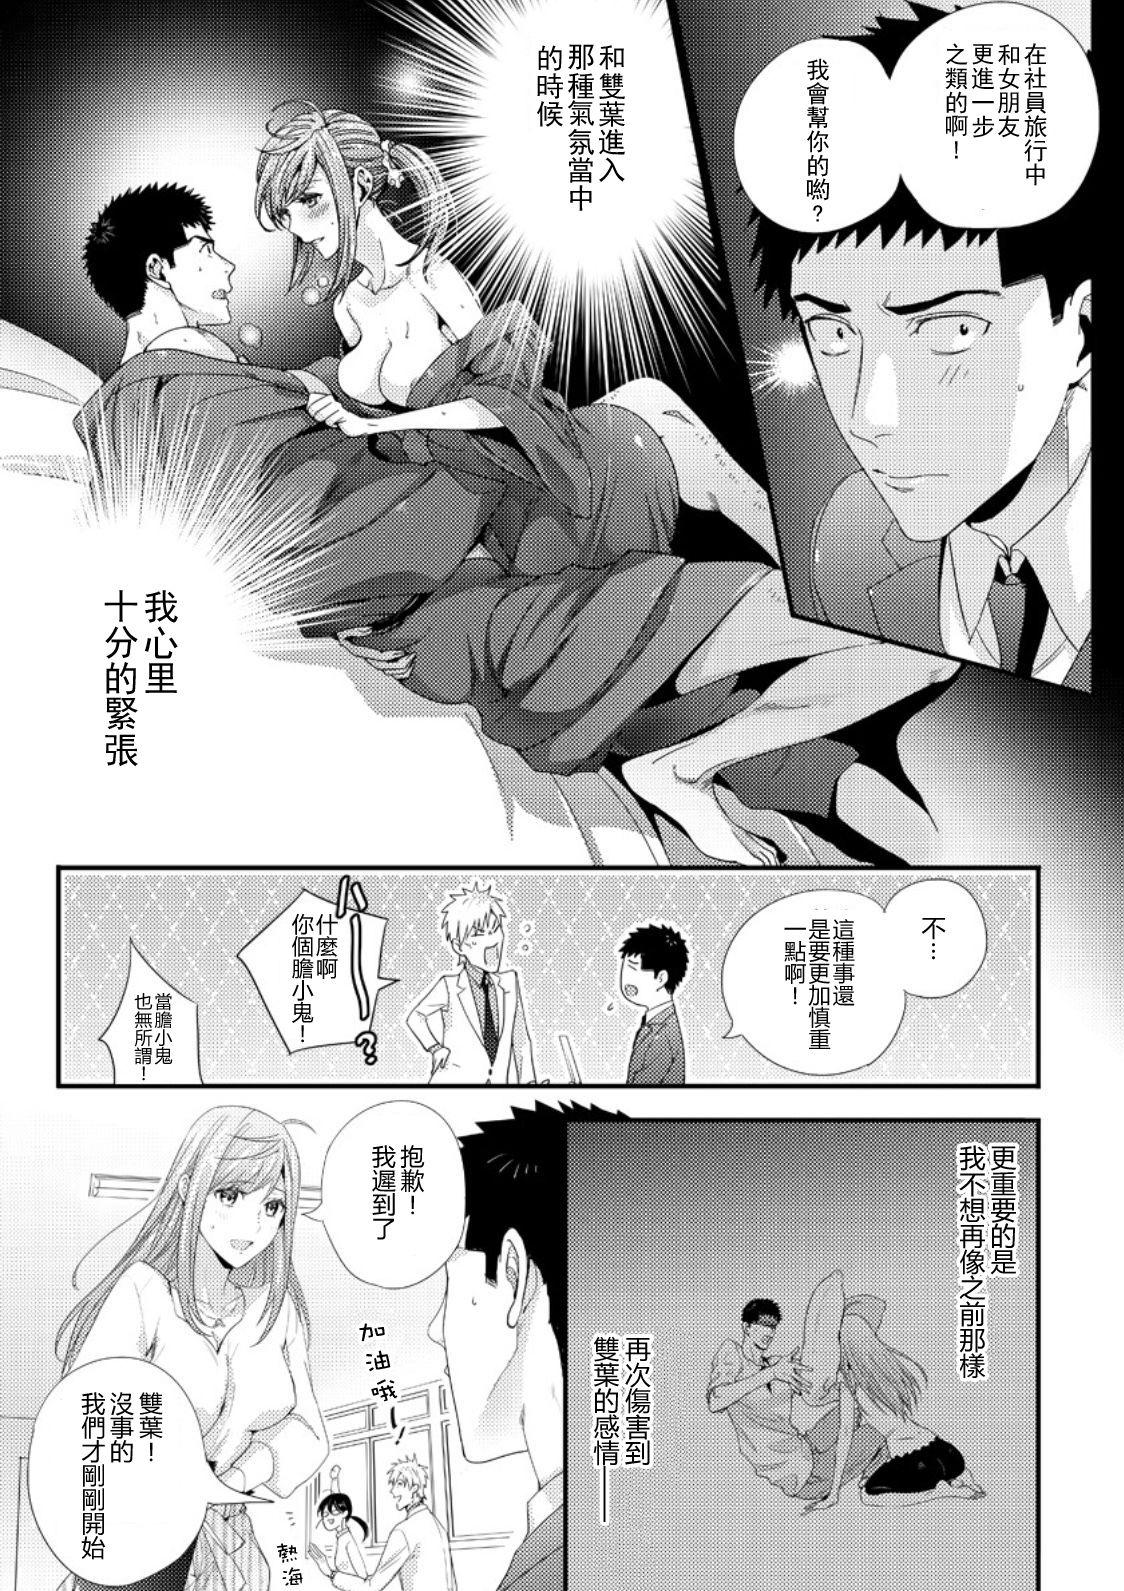 Please Let Me Hold You Futaba-San! Ch.1 4